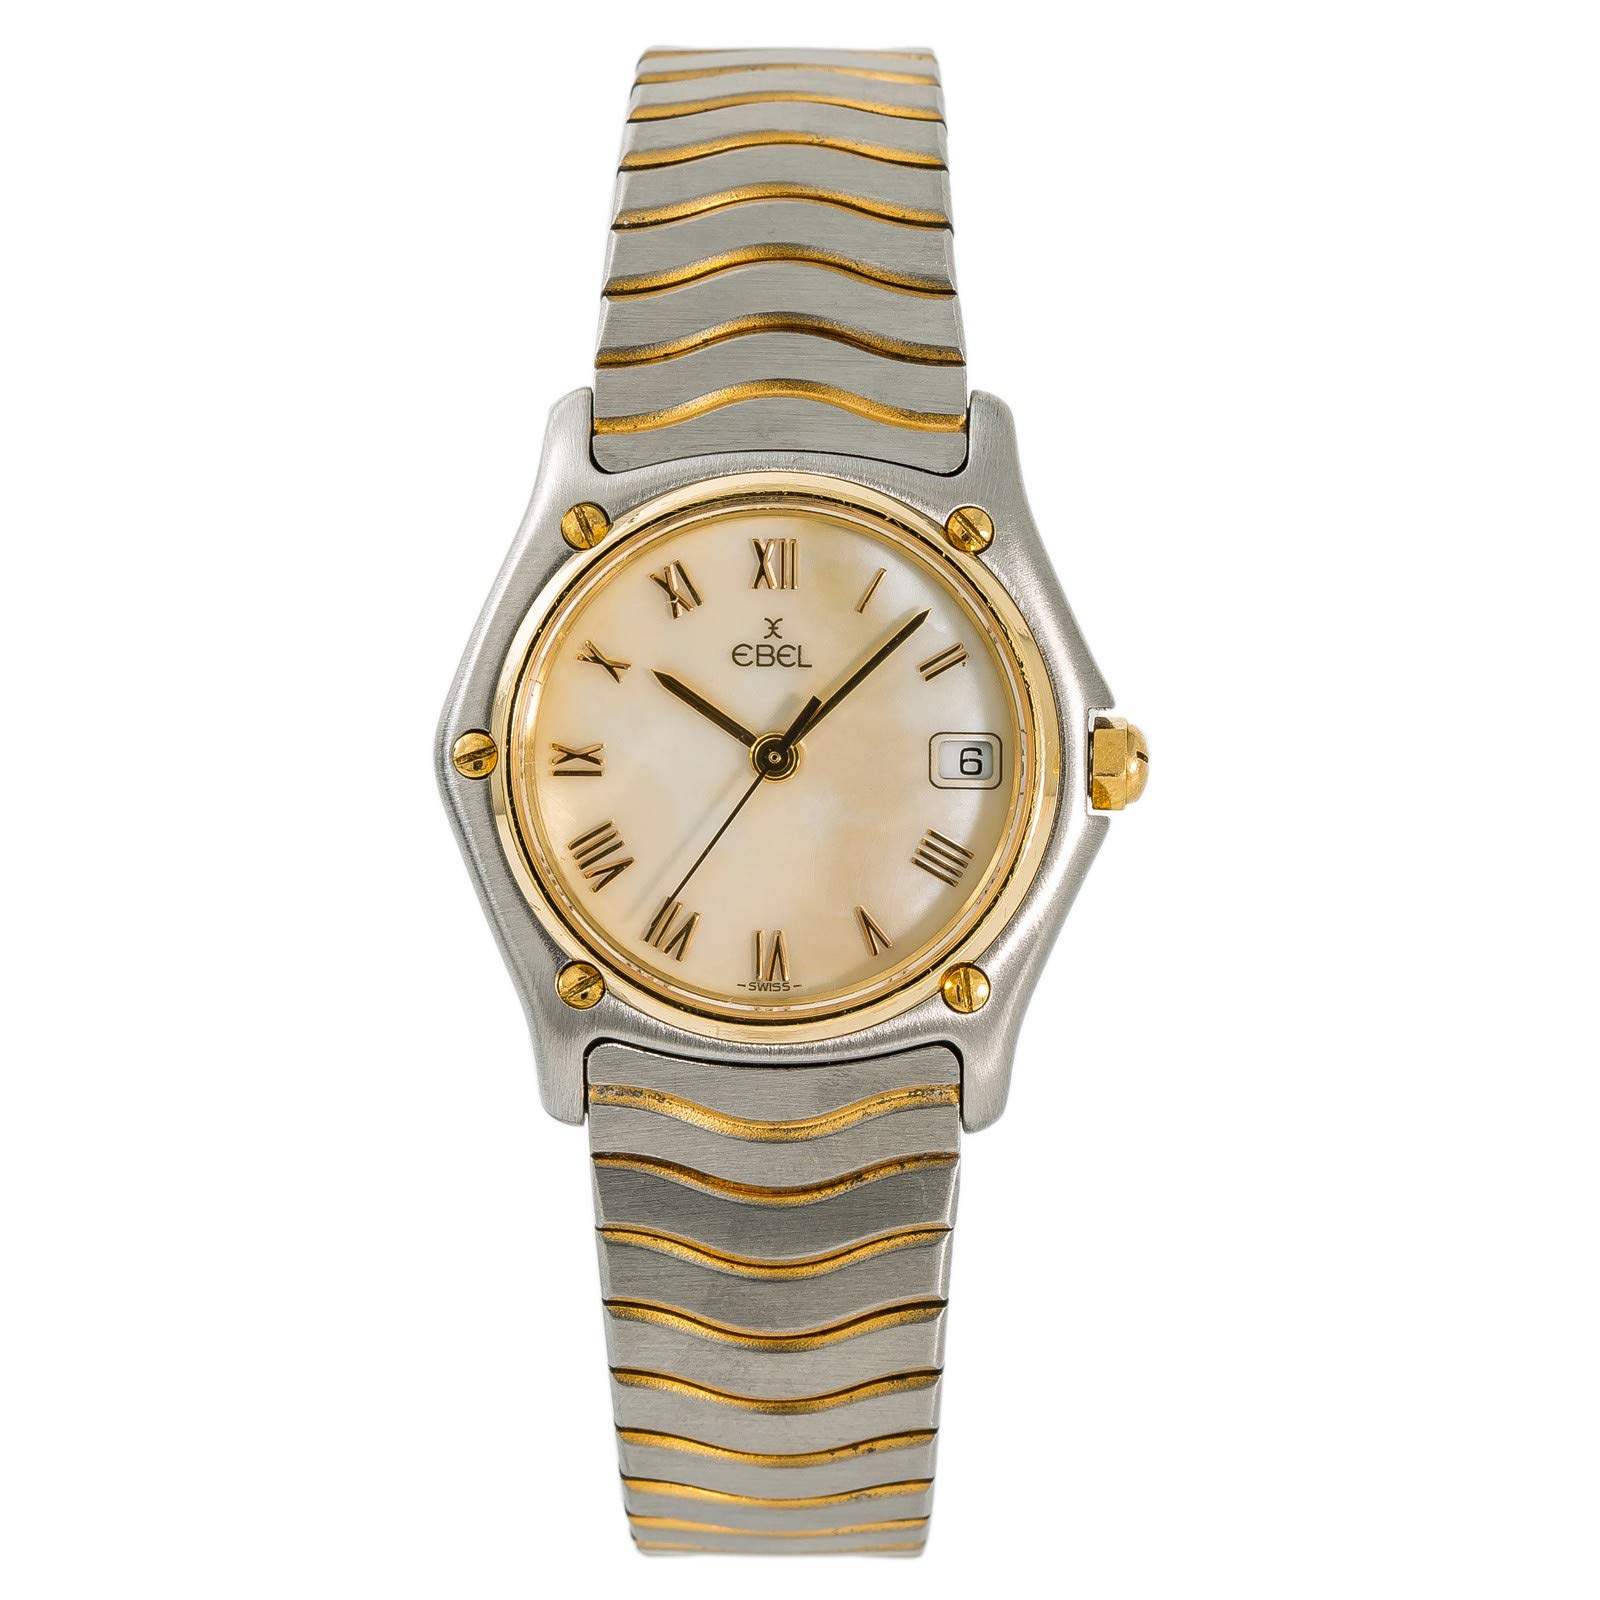 Ebel Wave Quartz Female Watch 183908 (Certified Pre-Owned)